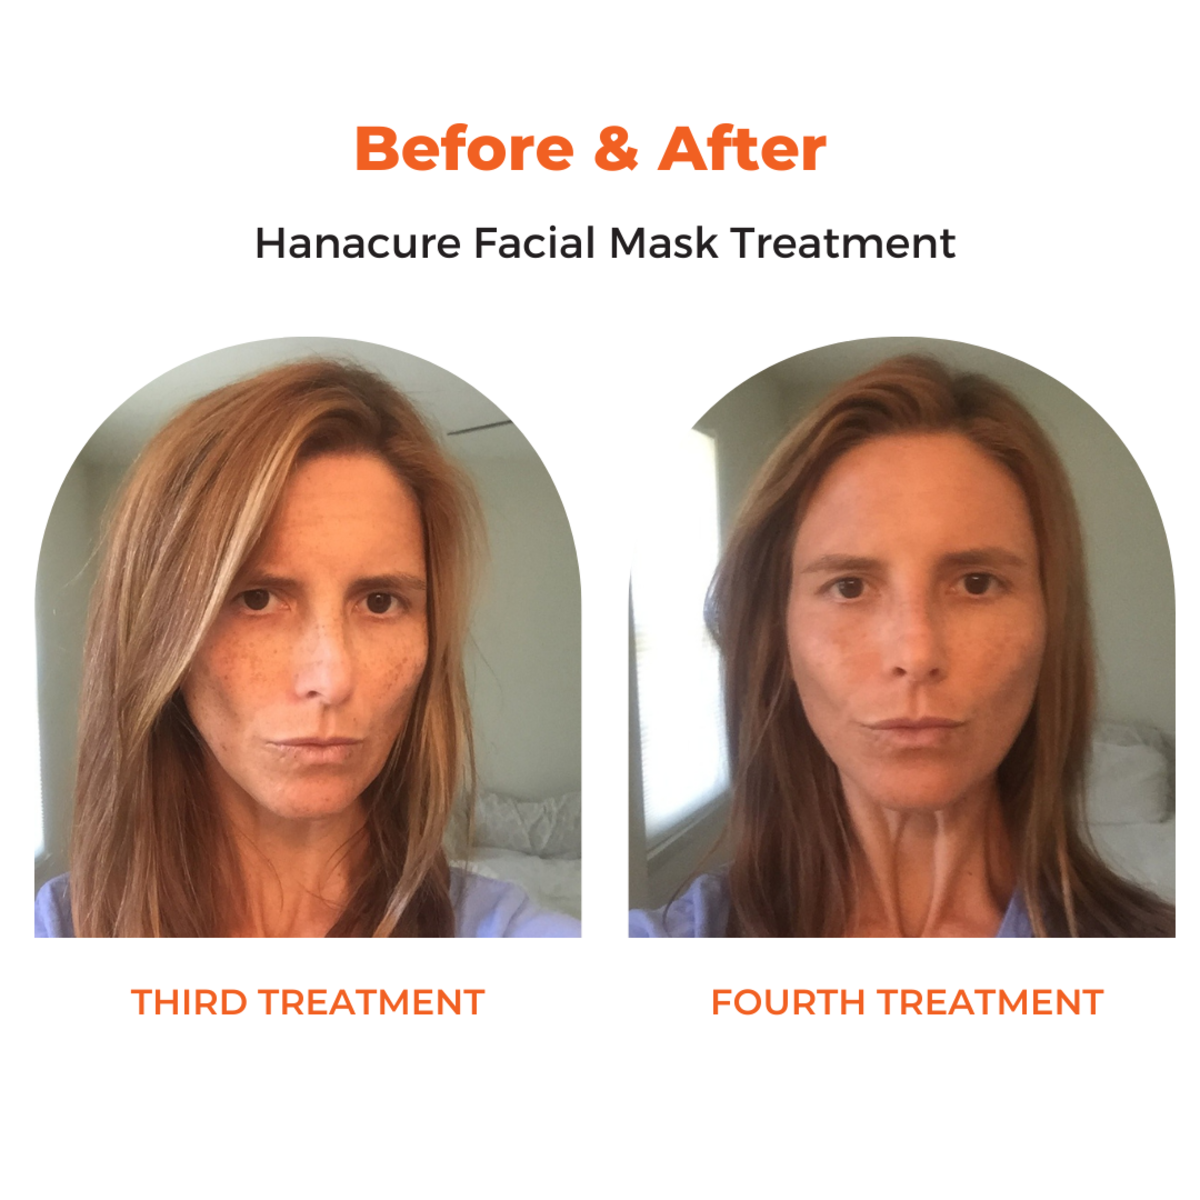 Before and after the third and fourth Hanacure treatments